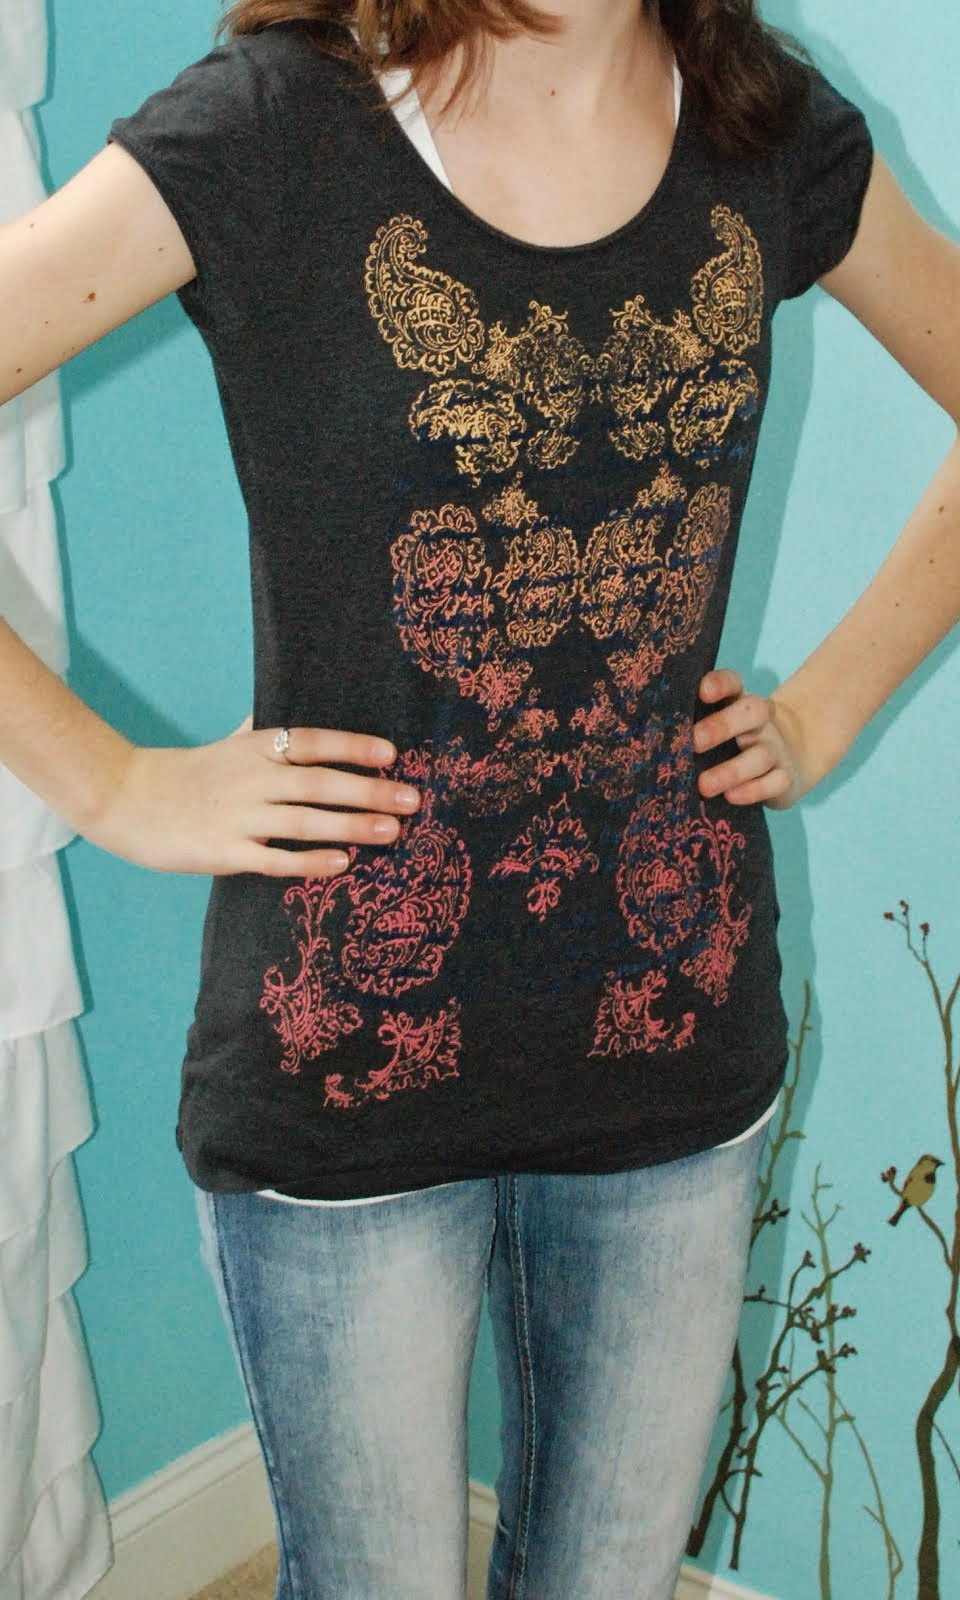 SCOLIOSIS CLOTHING: PART 2